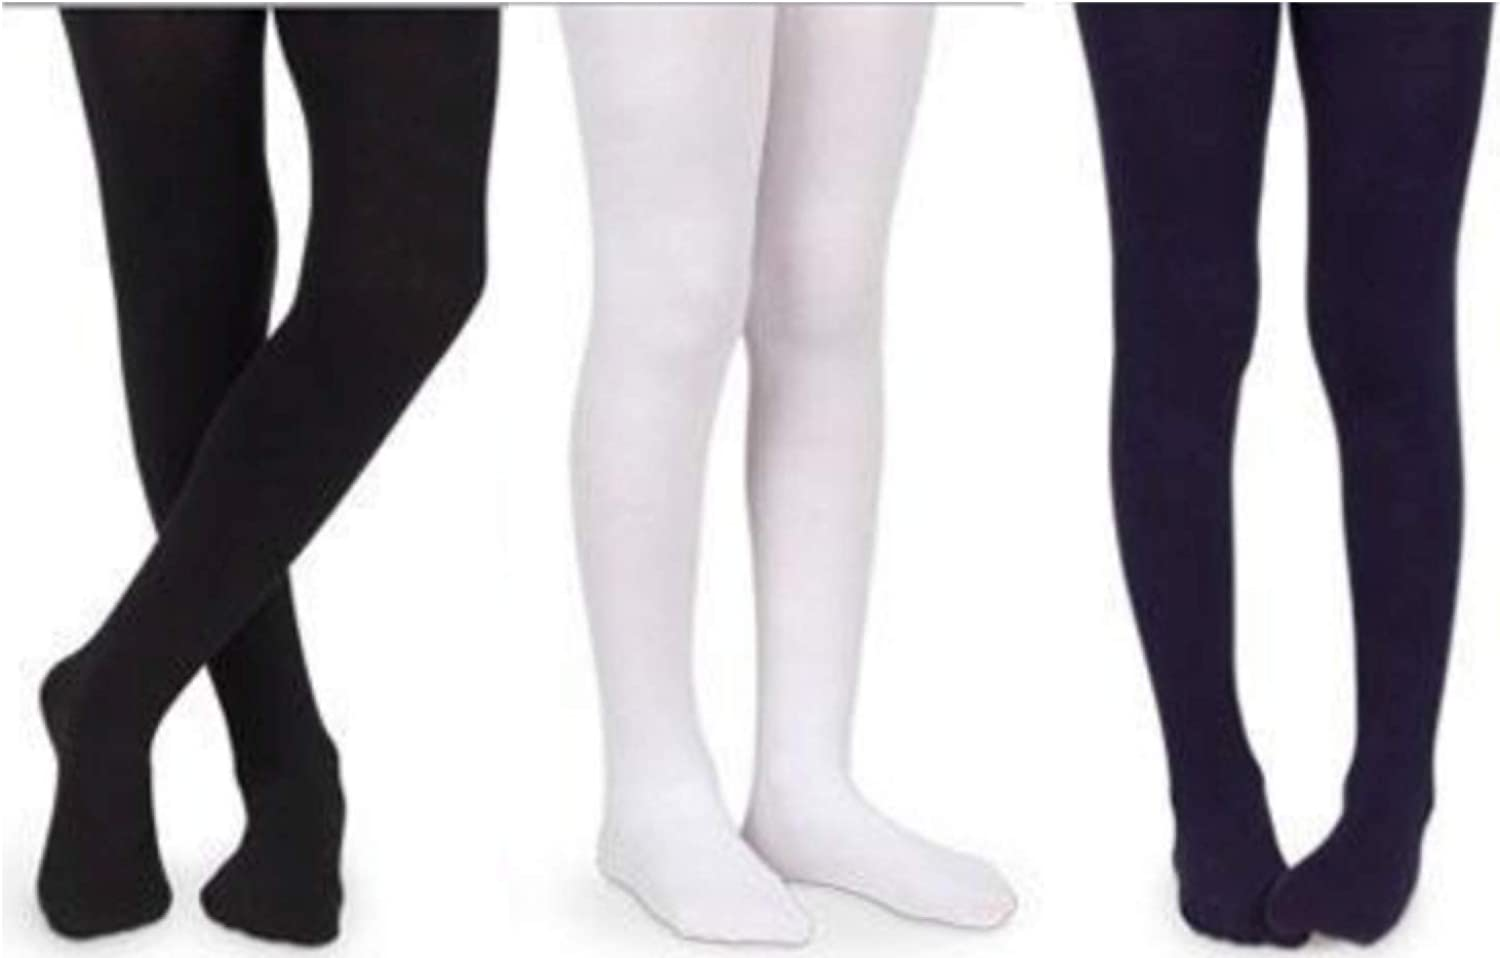 Girls' Super-Soft Effect Breathable Cotton Tights for School Uniform Pack of 3 (Navy, Black, and White) (2)